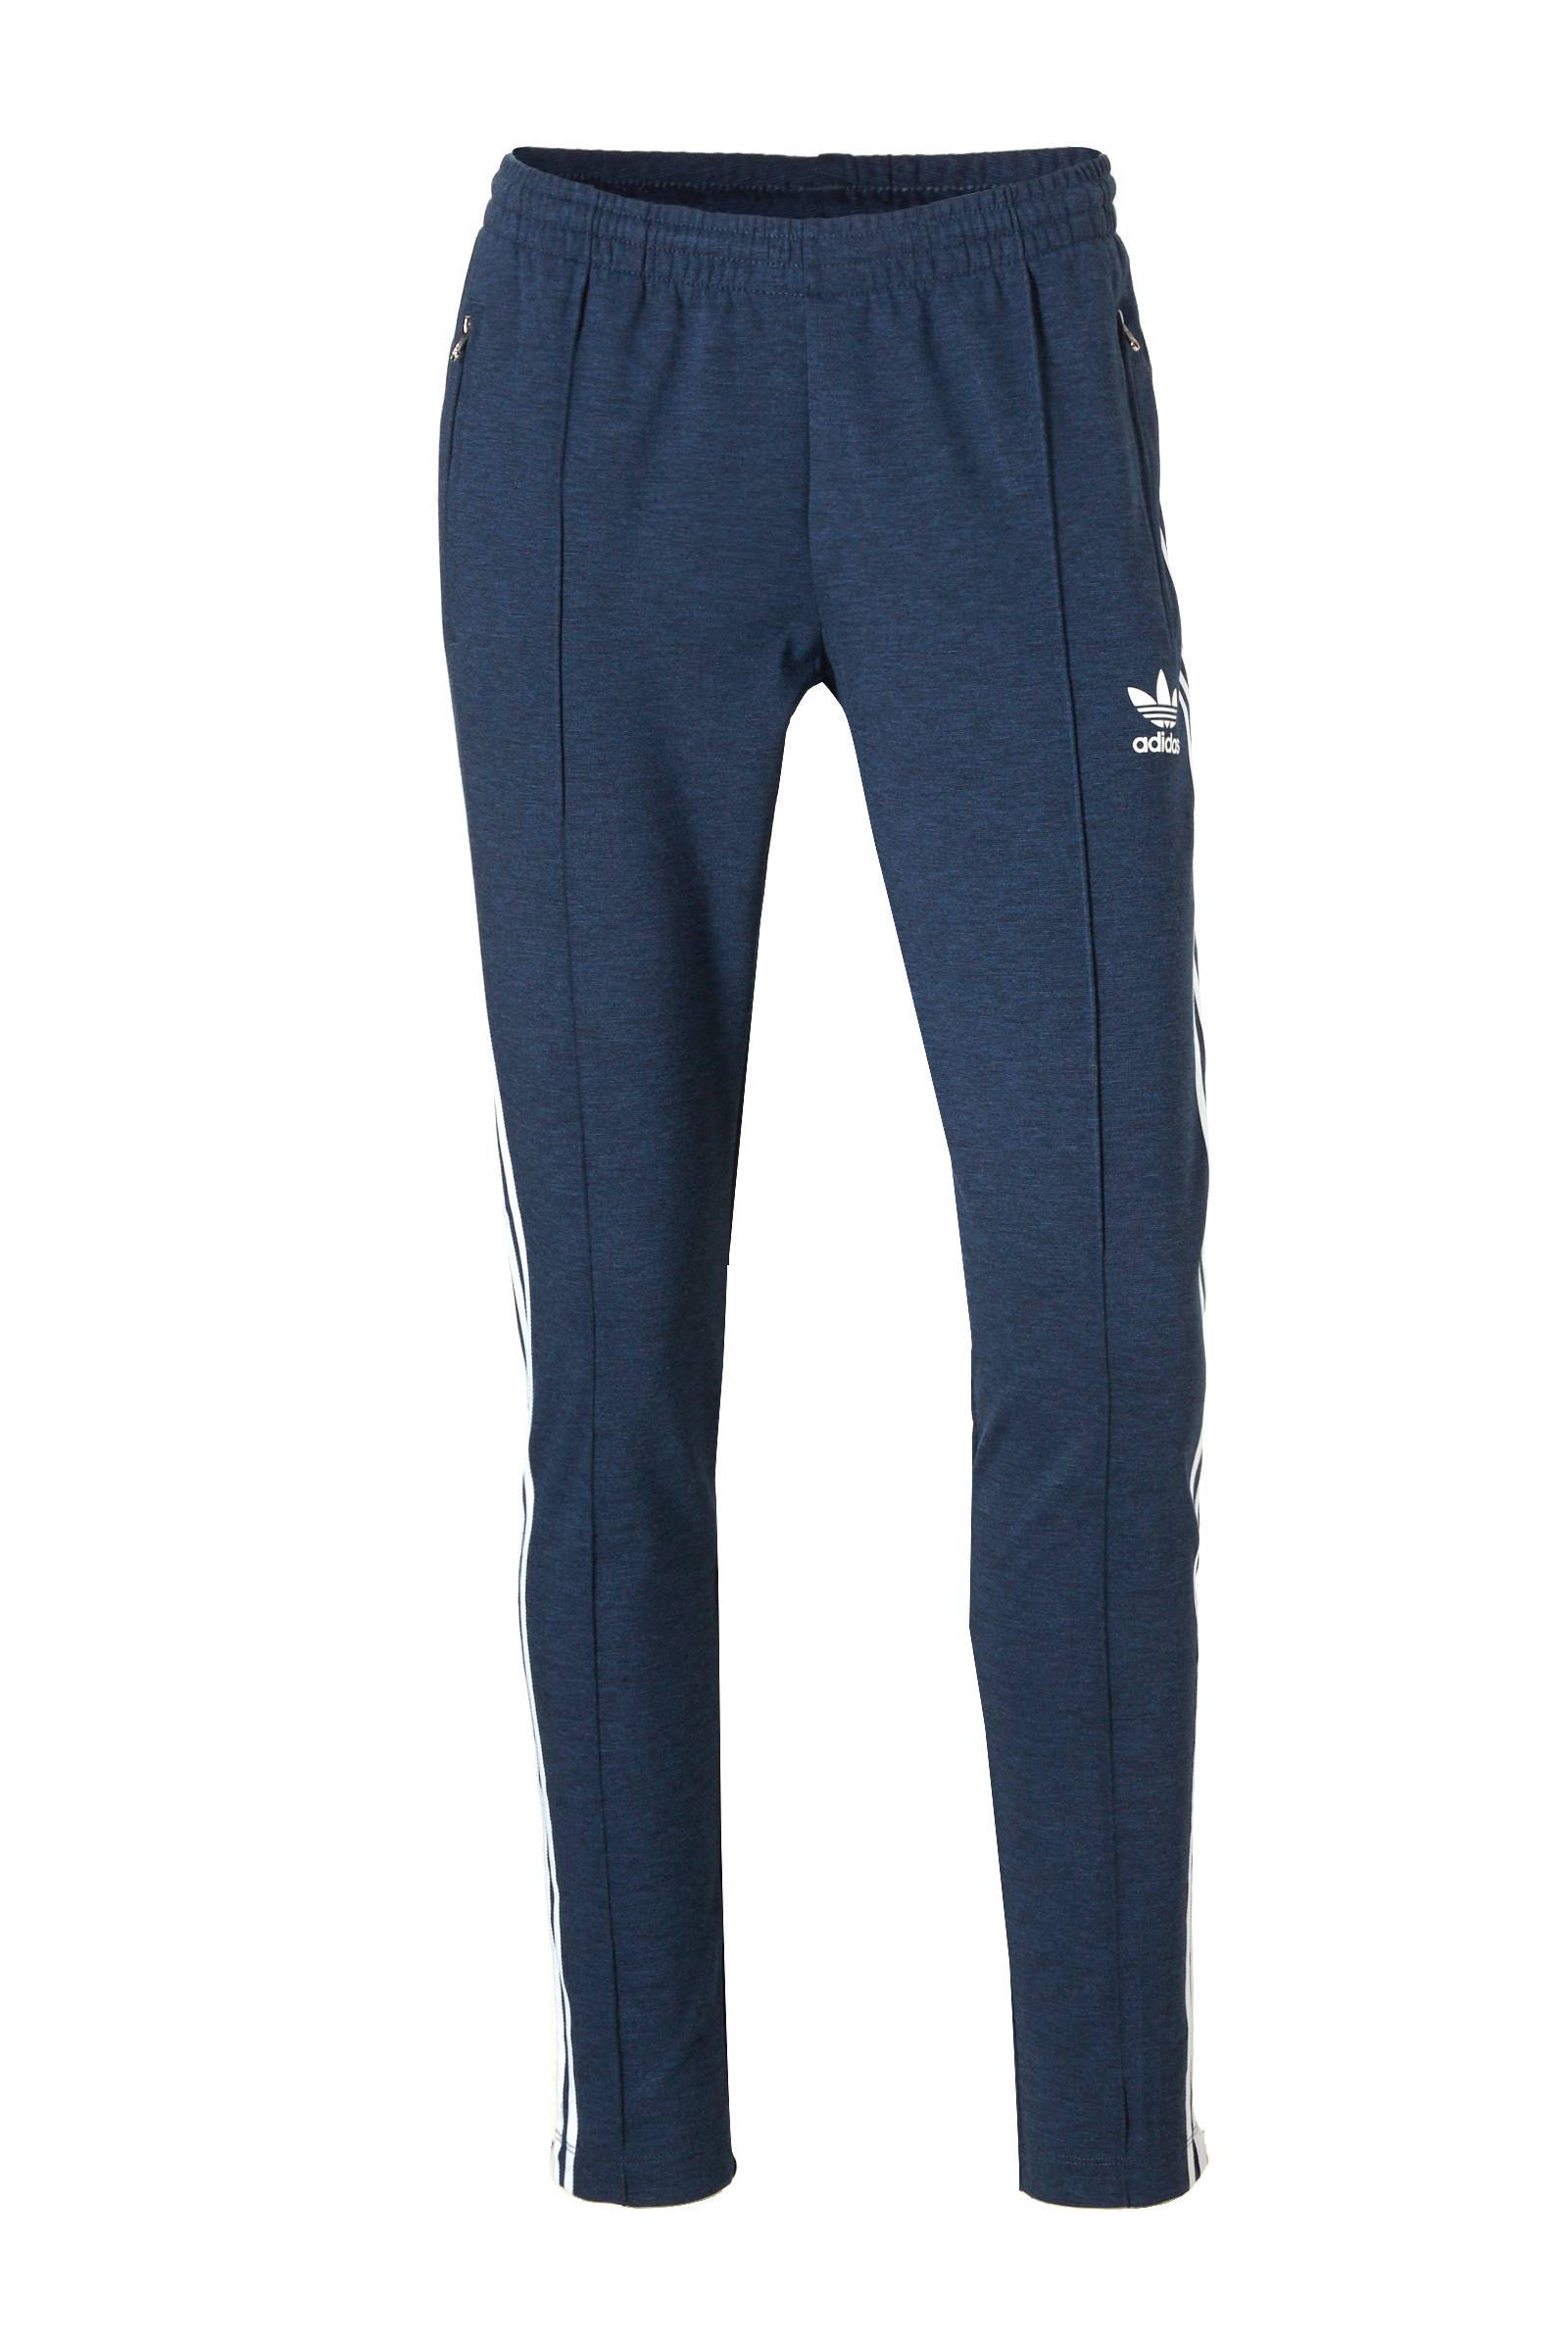 adidas Originals sportbroek